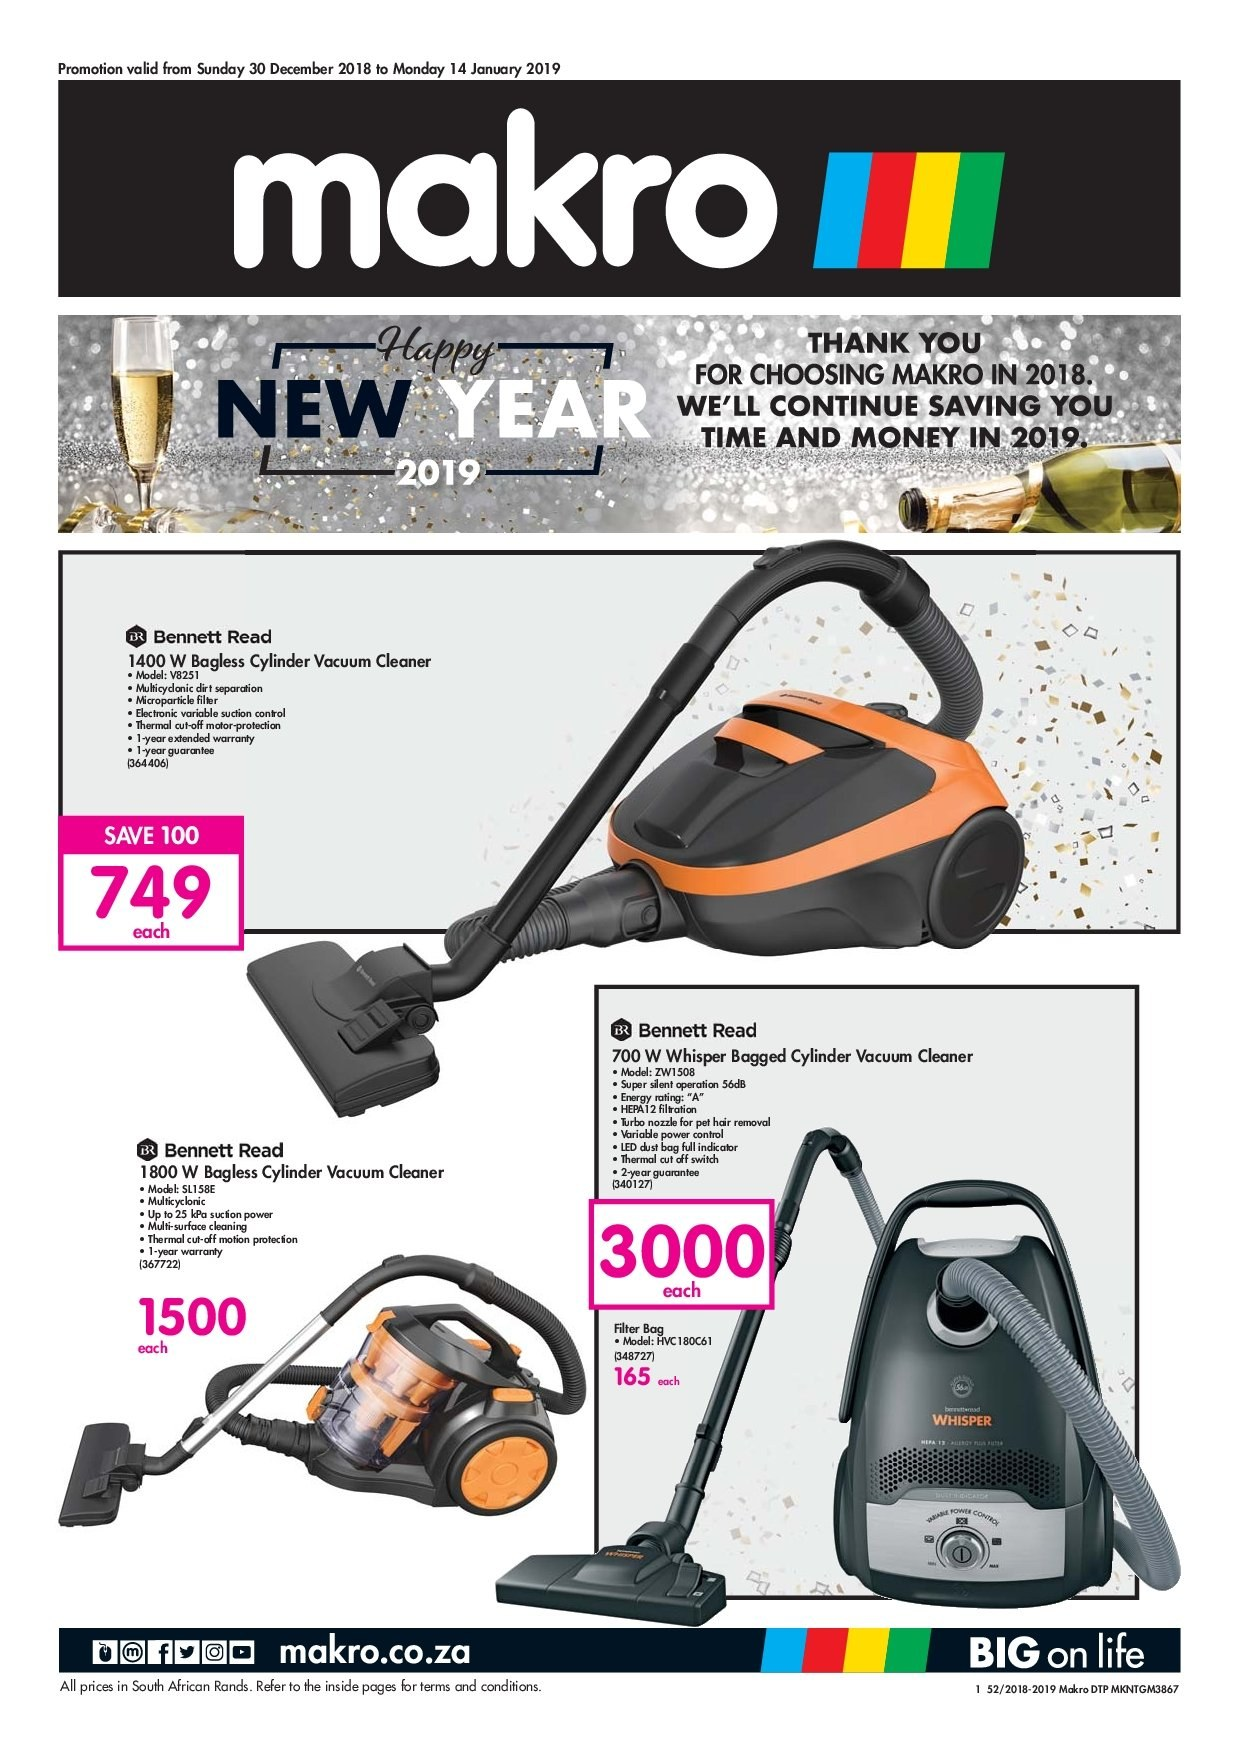 Makro special - 12.30.2018 - 01.14.2019 - Sales products - bag, surface, switch, vacuum, vacuum cleaner, hair removal, pet. Page 1.